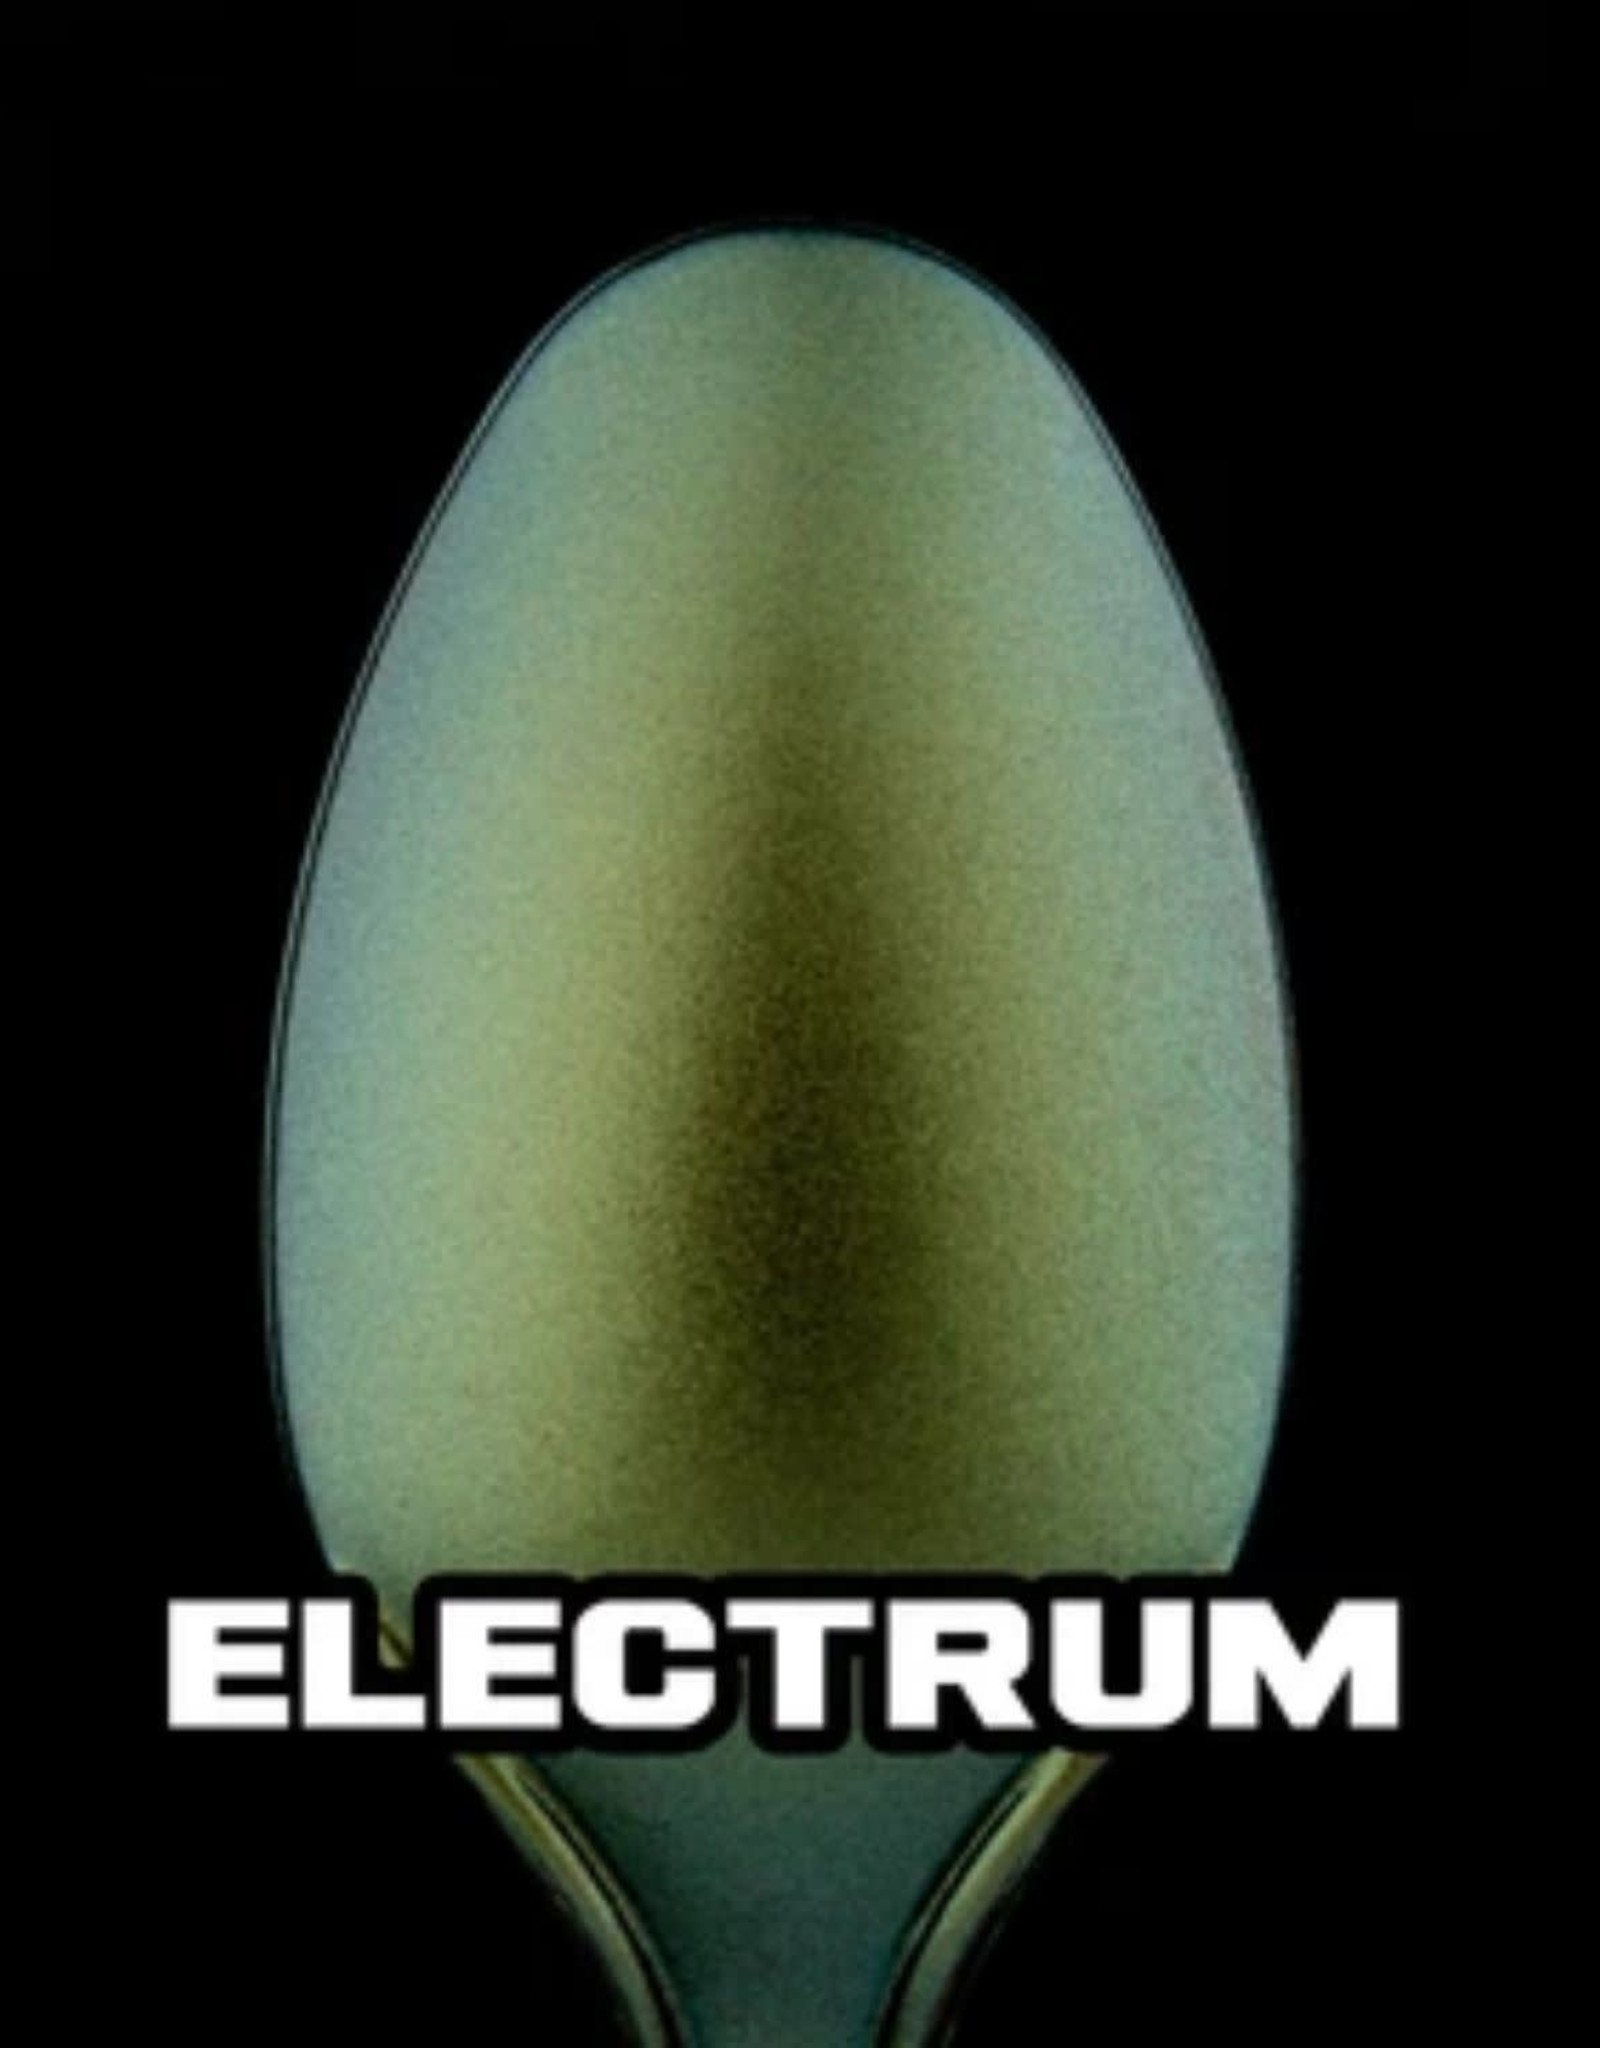 Turbo Dork Electrum - Turboshift